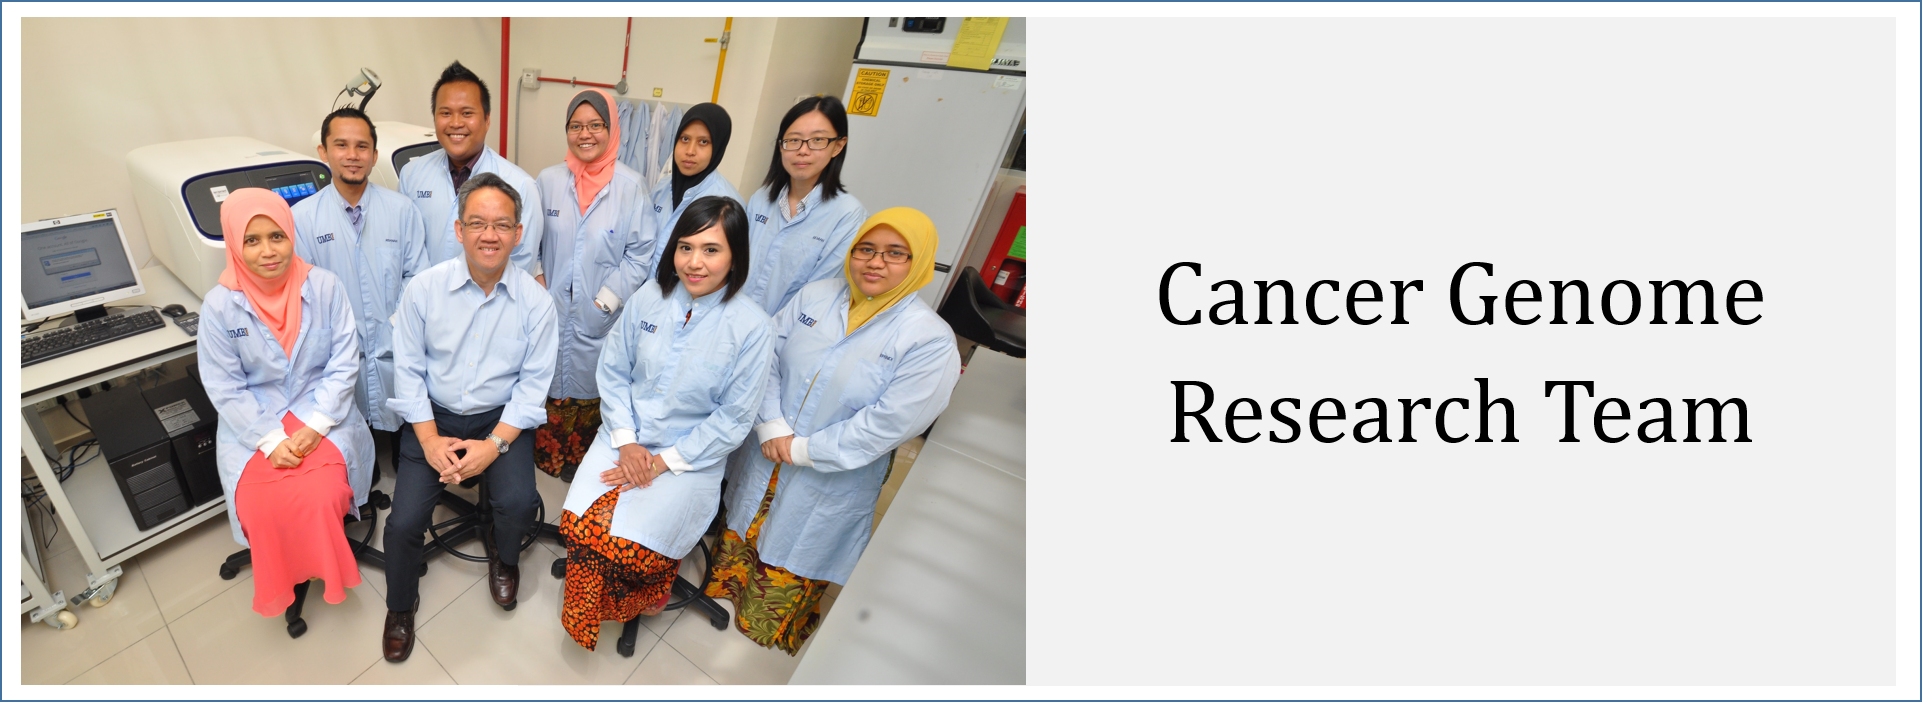 Cancer Genome Research Team